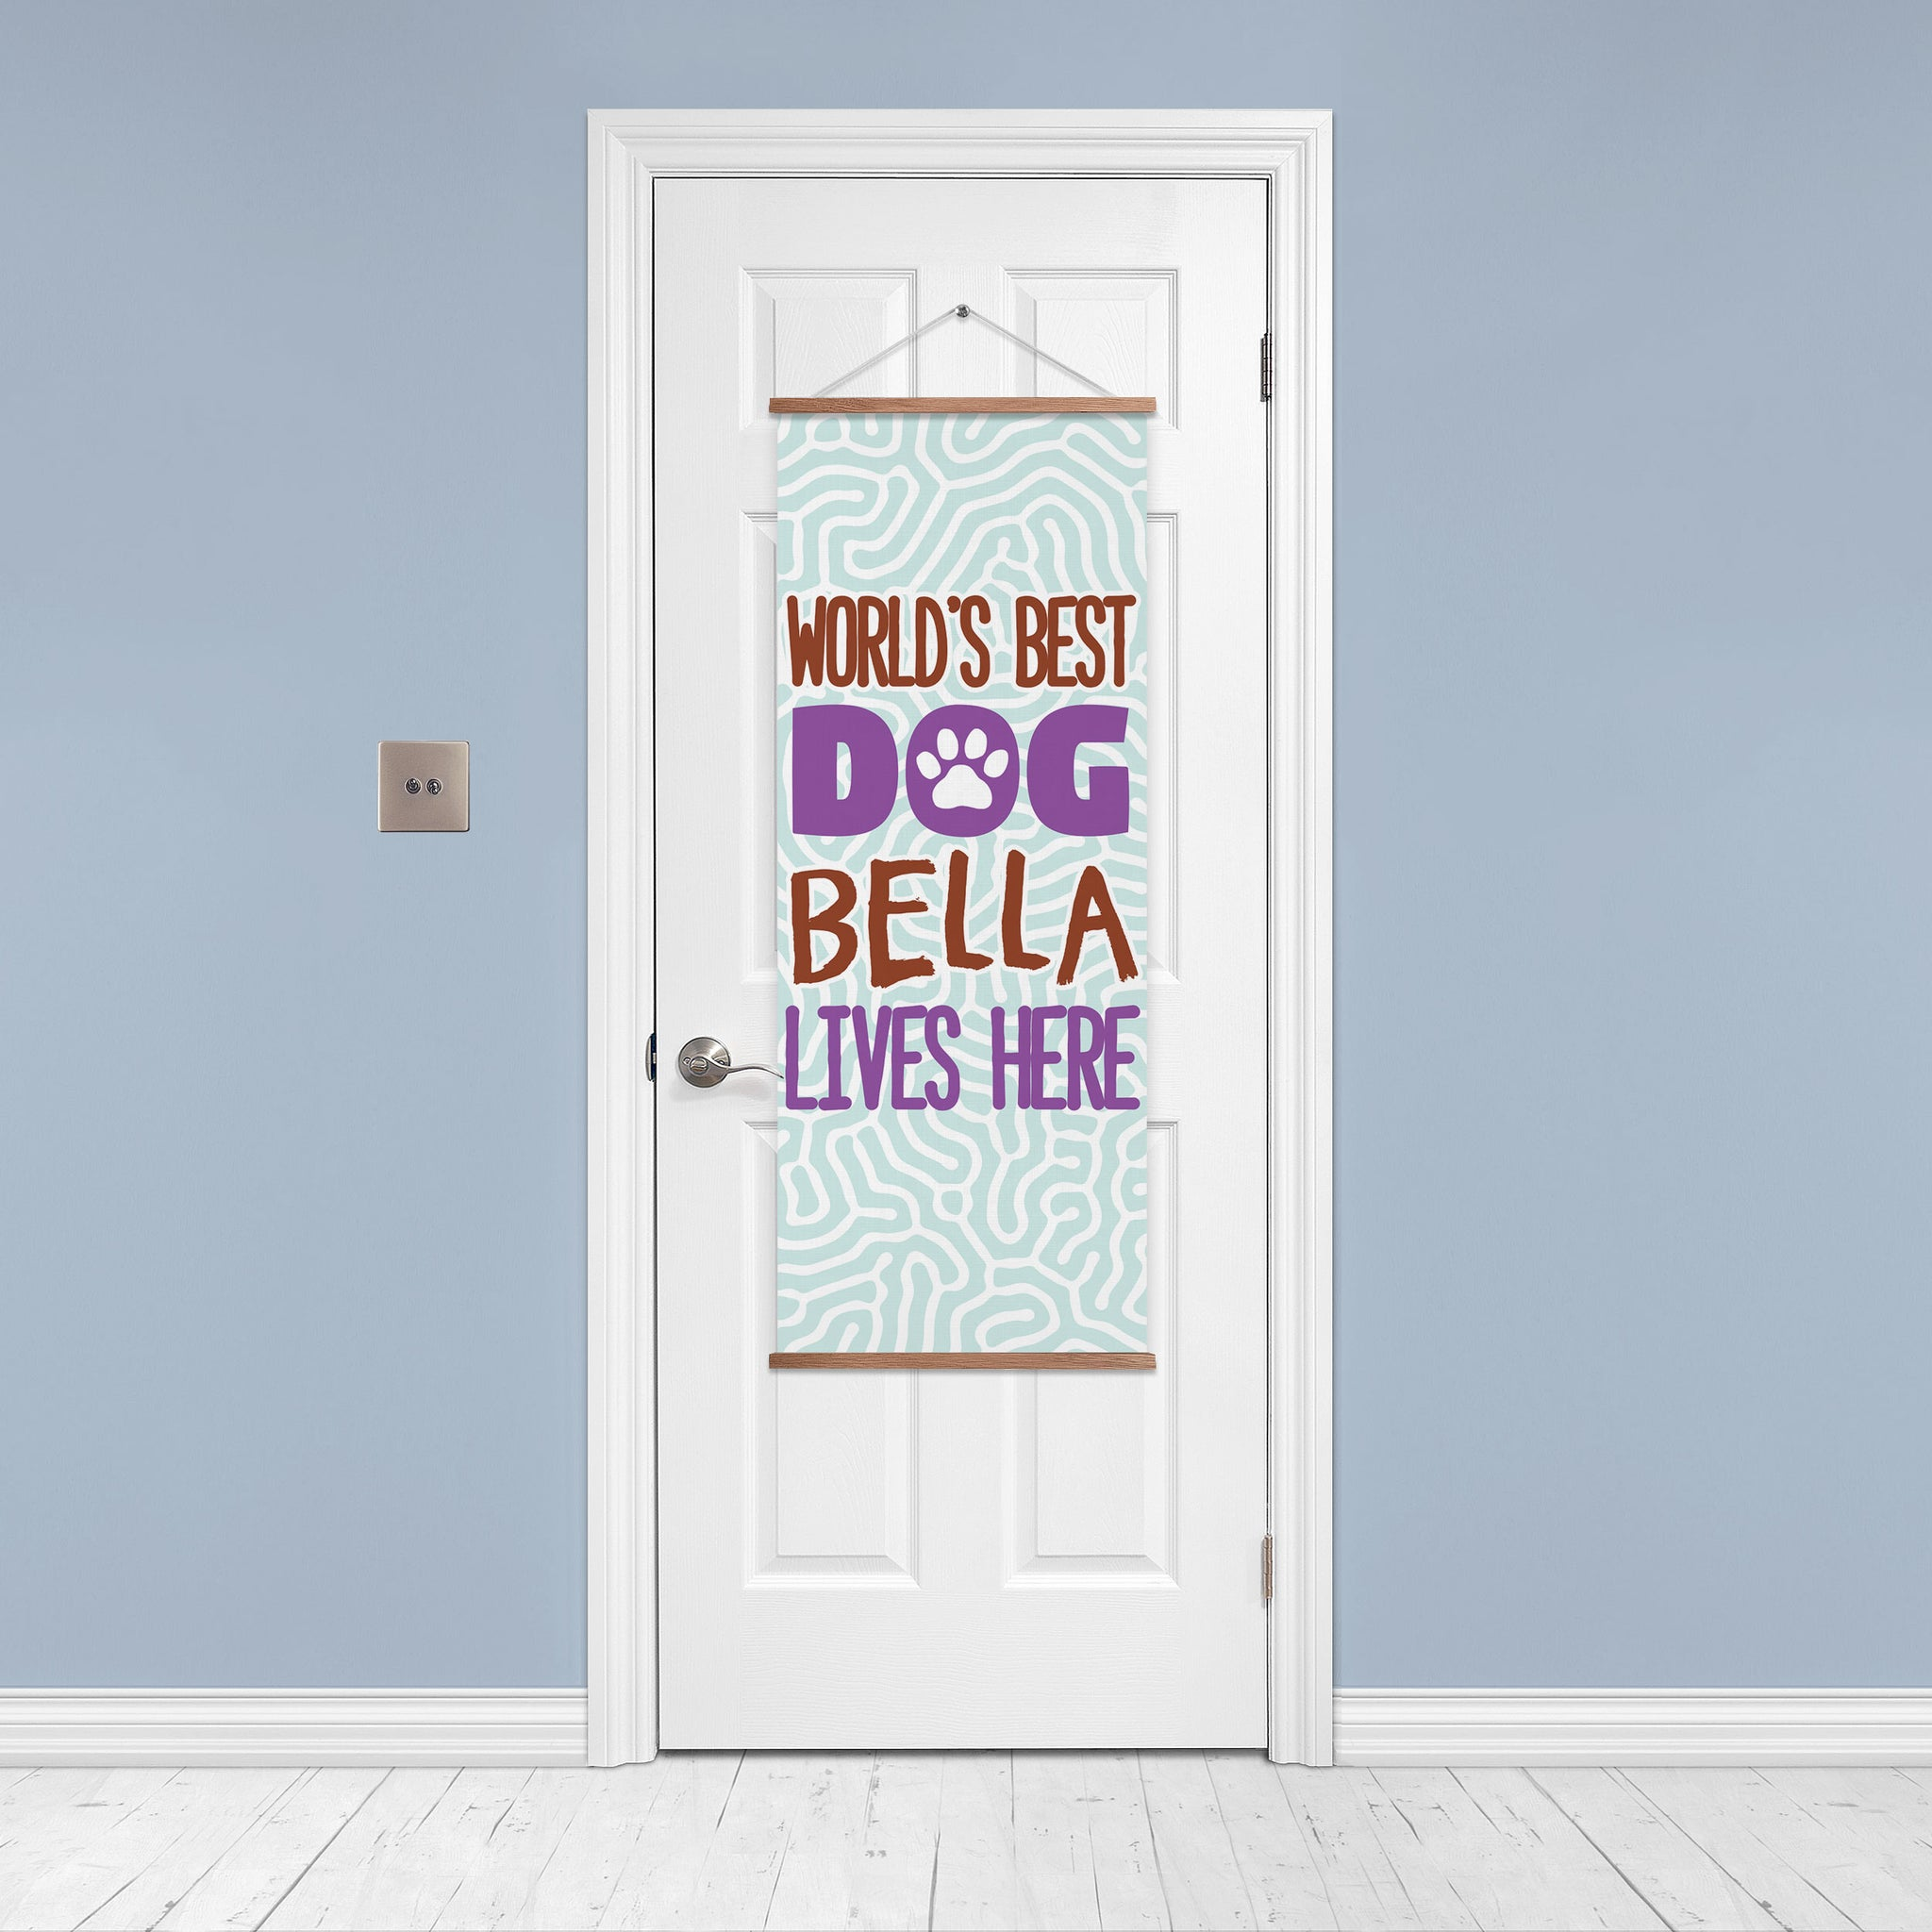 Personalized Worldu0027s Best Dog Door/Wall Banner